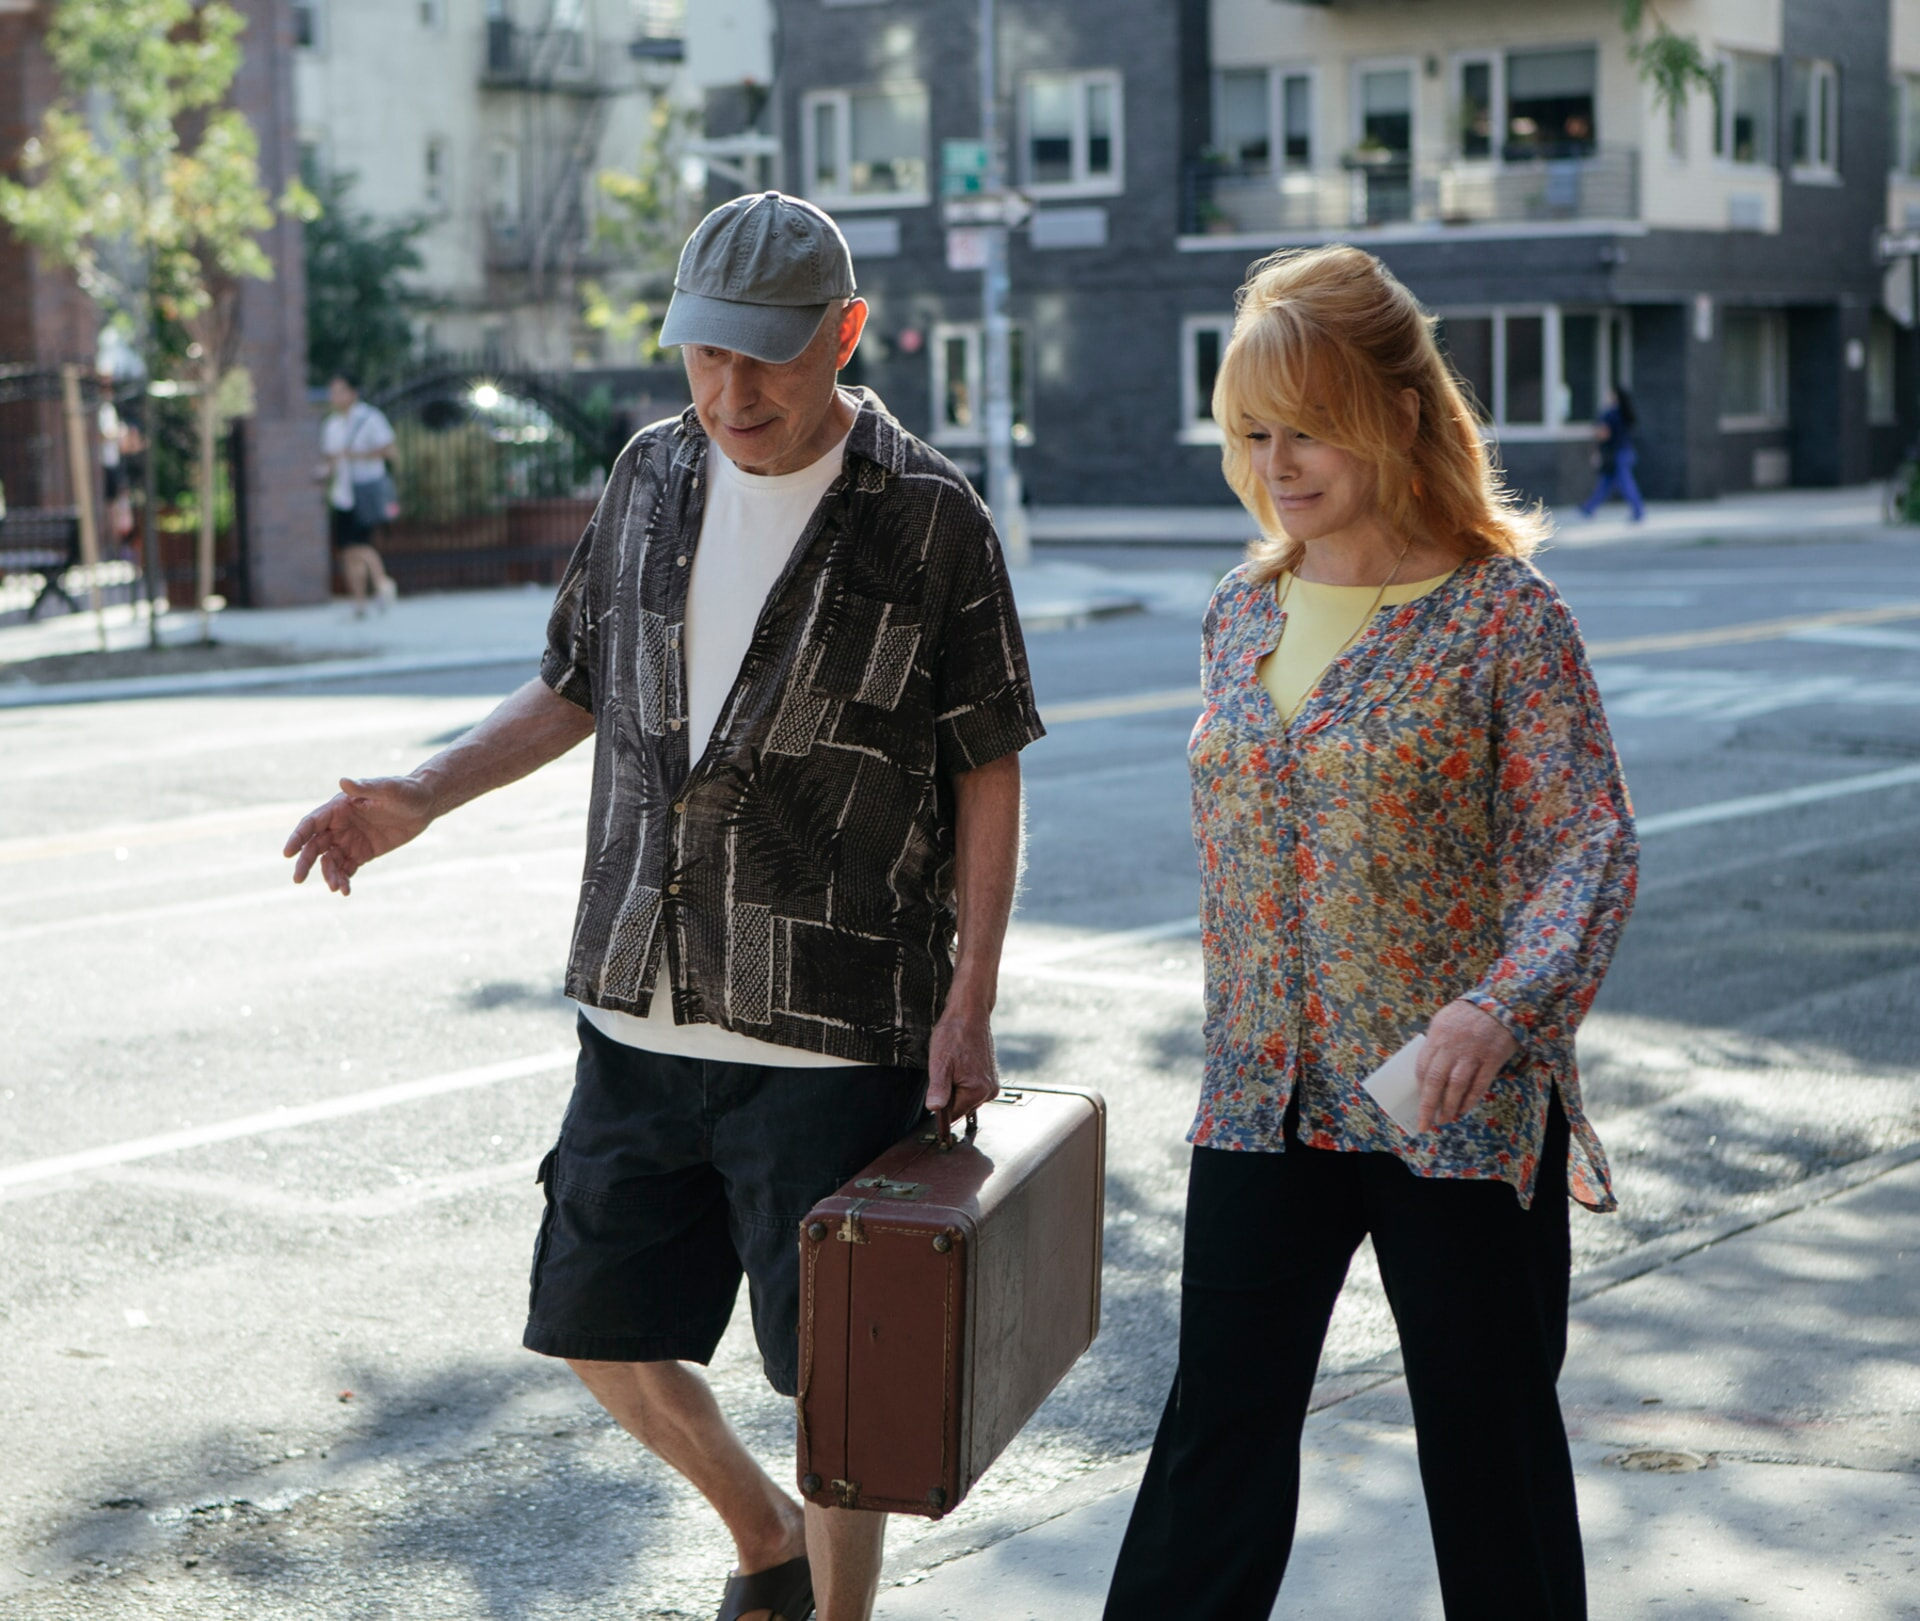 """ALAN ARKIN as Albert Garner and ANN-MARGRET as Annie Santori in the New Line Cinema and Village Roadshow comedy """"GOING IN STYLE,"""" a Warner Bros. Pictures release."""